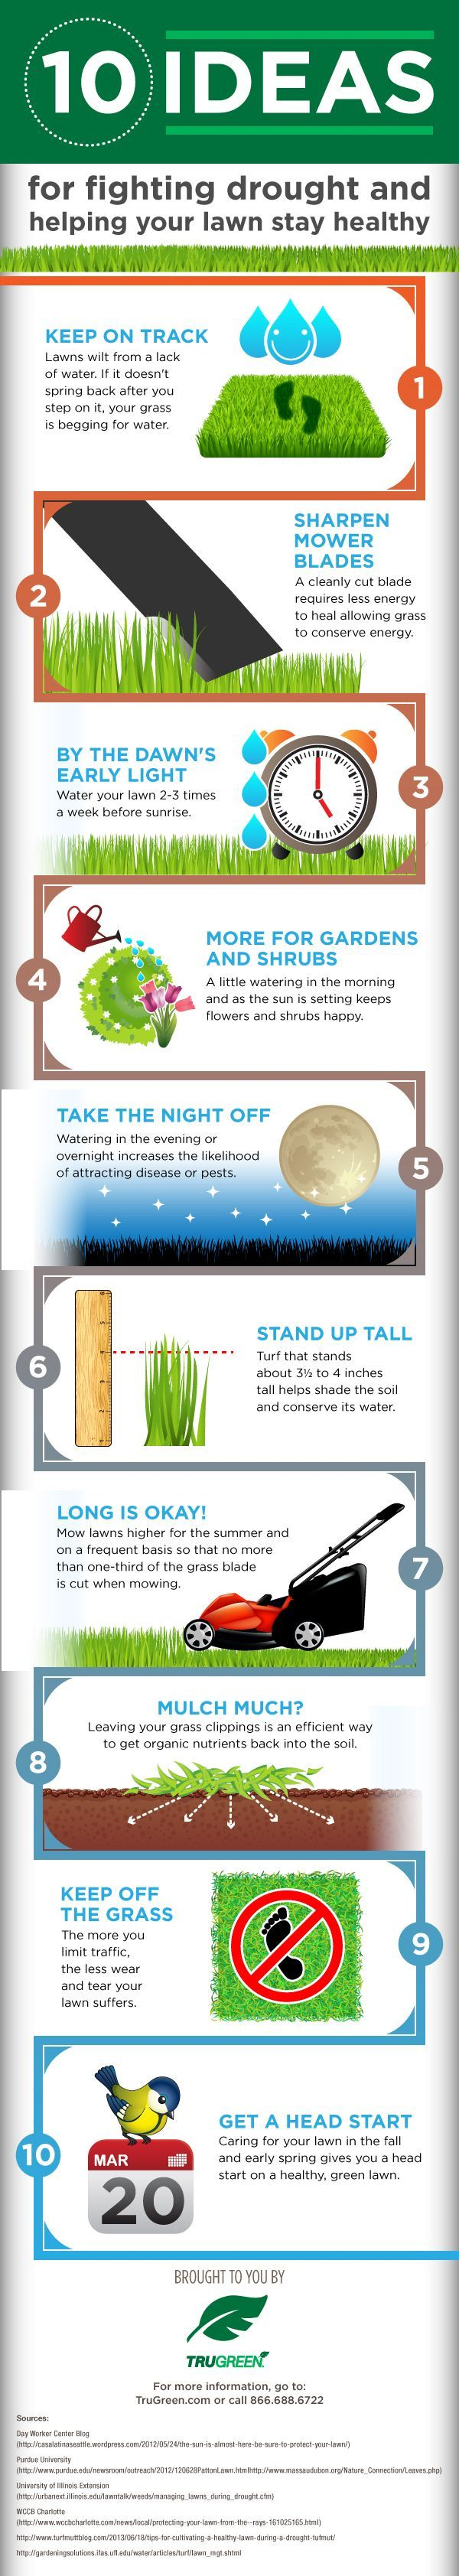 Best Lawn Care Tips: 10 Ways to Maintain Your Organic Lawn http://homeandgardenamerica.com/best-lawn-care-tips